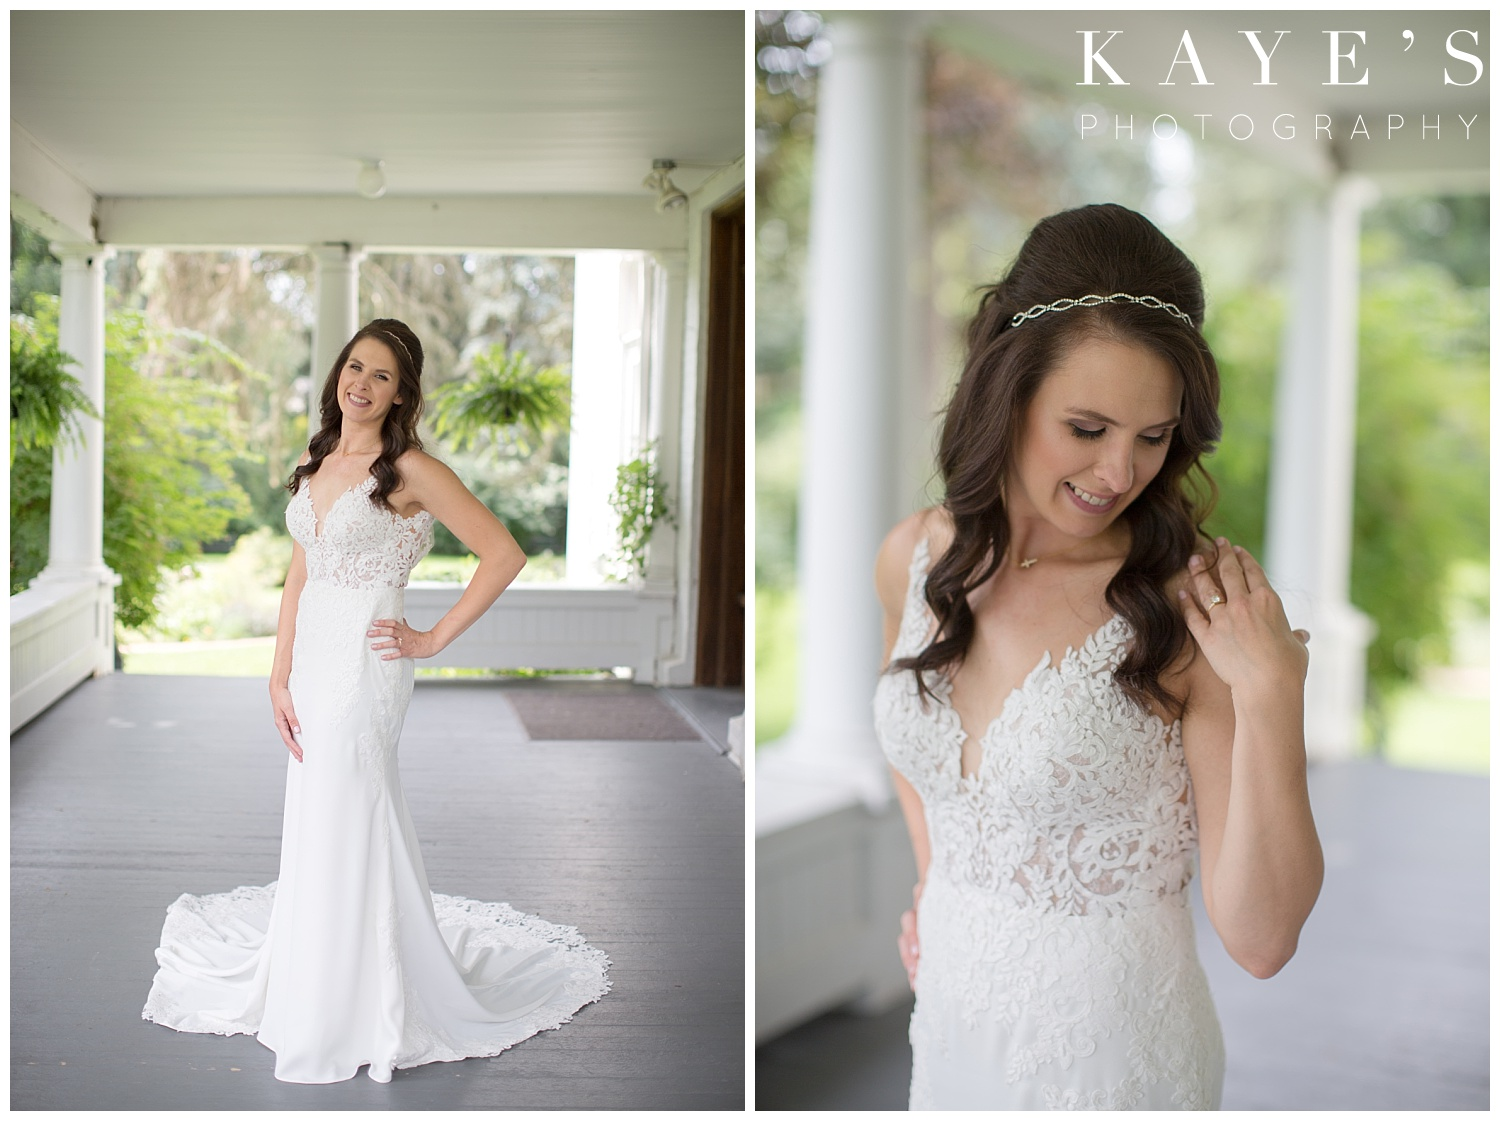 bridal portraits with kaye's photography in farmington michigan